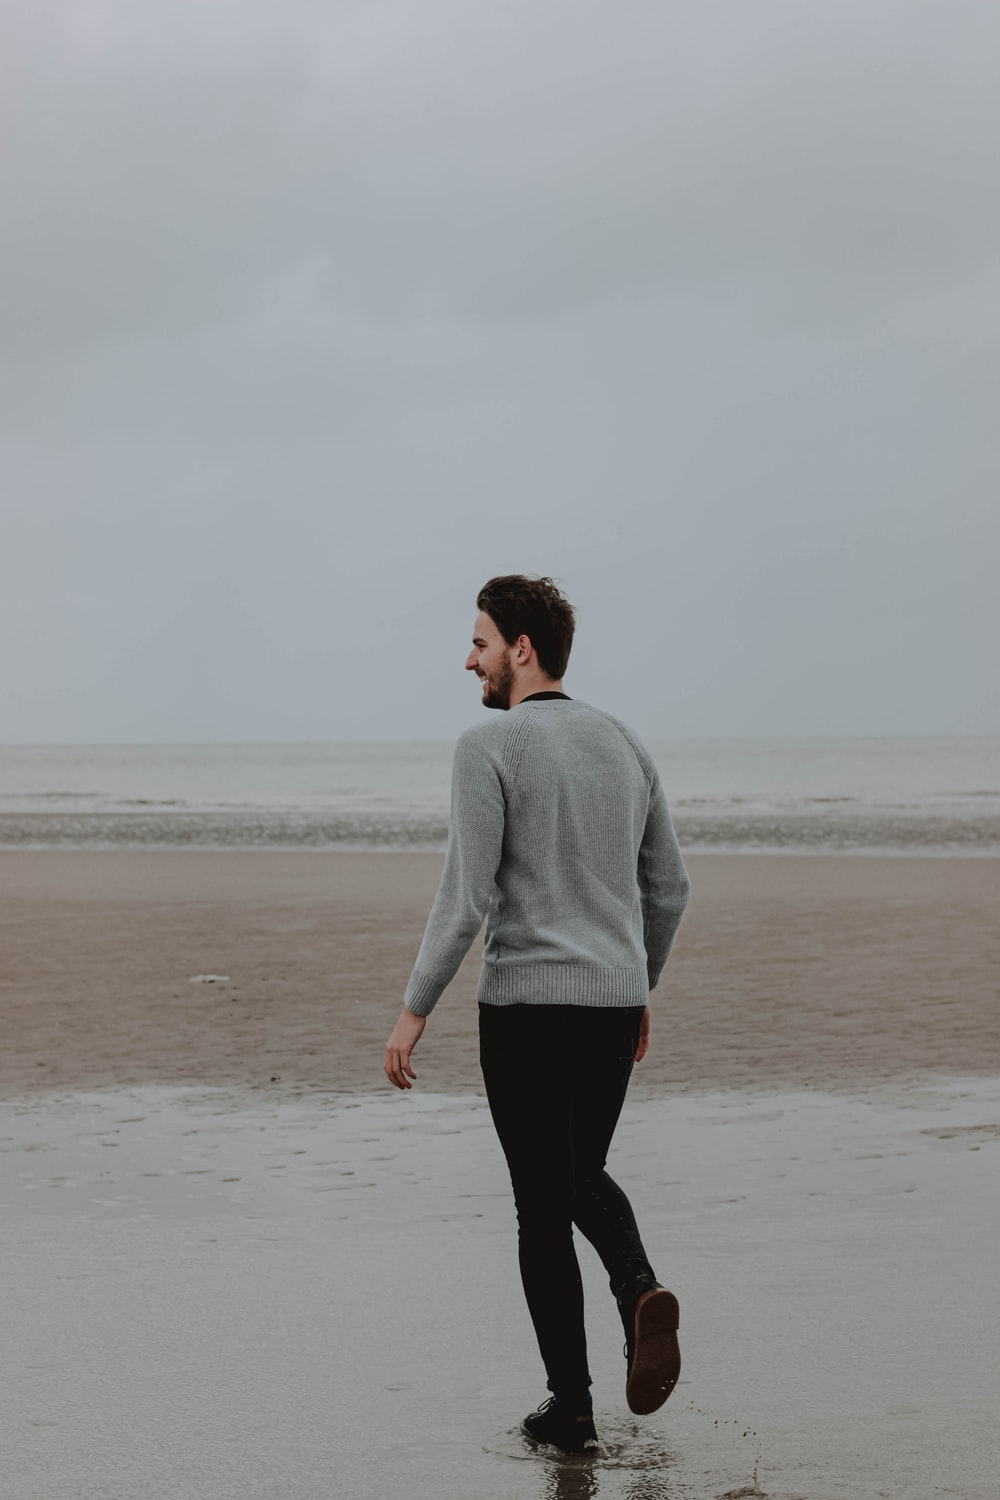 woman in gray sweater and black pants walking on beach during daytime